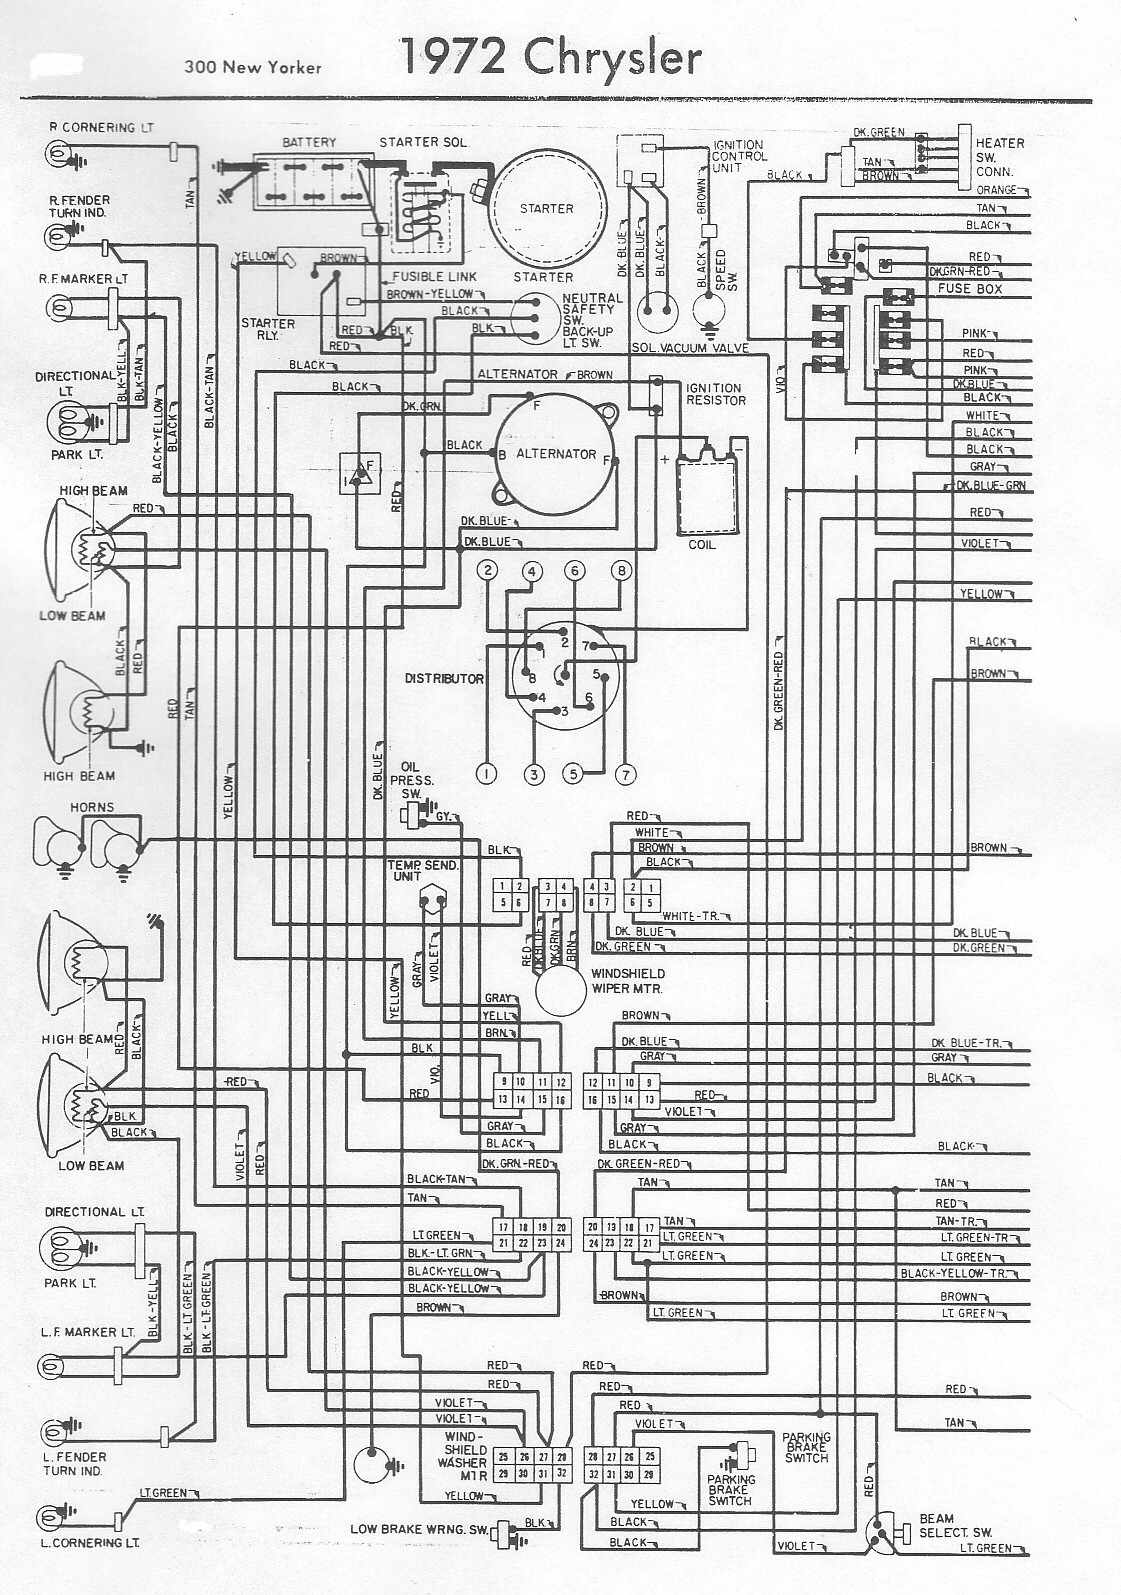 Chrysler Car Manuals Wiring Diagrams Pdf Fault Codes 1940 Ford Diagram Free Download Schematic